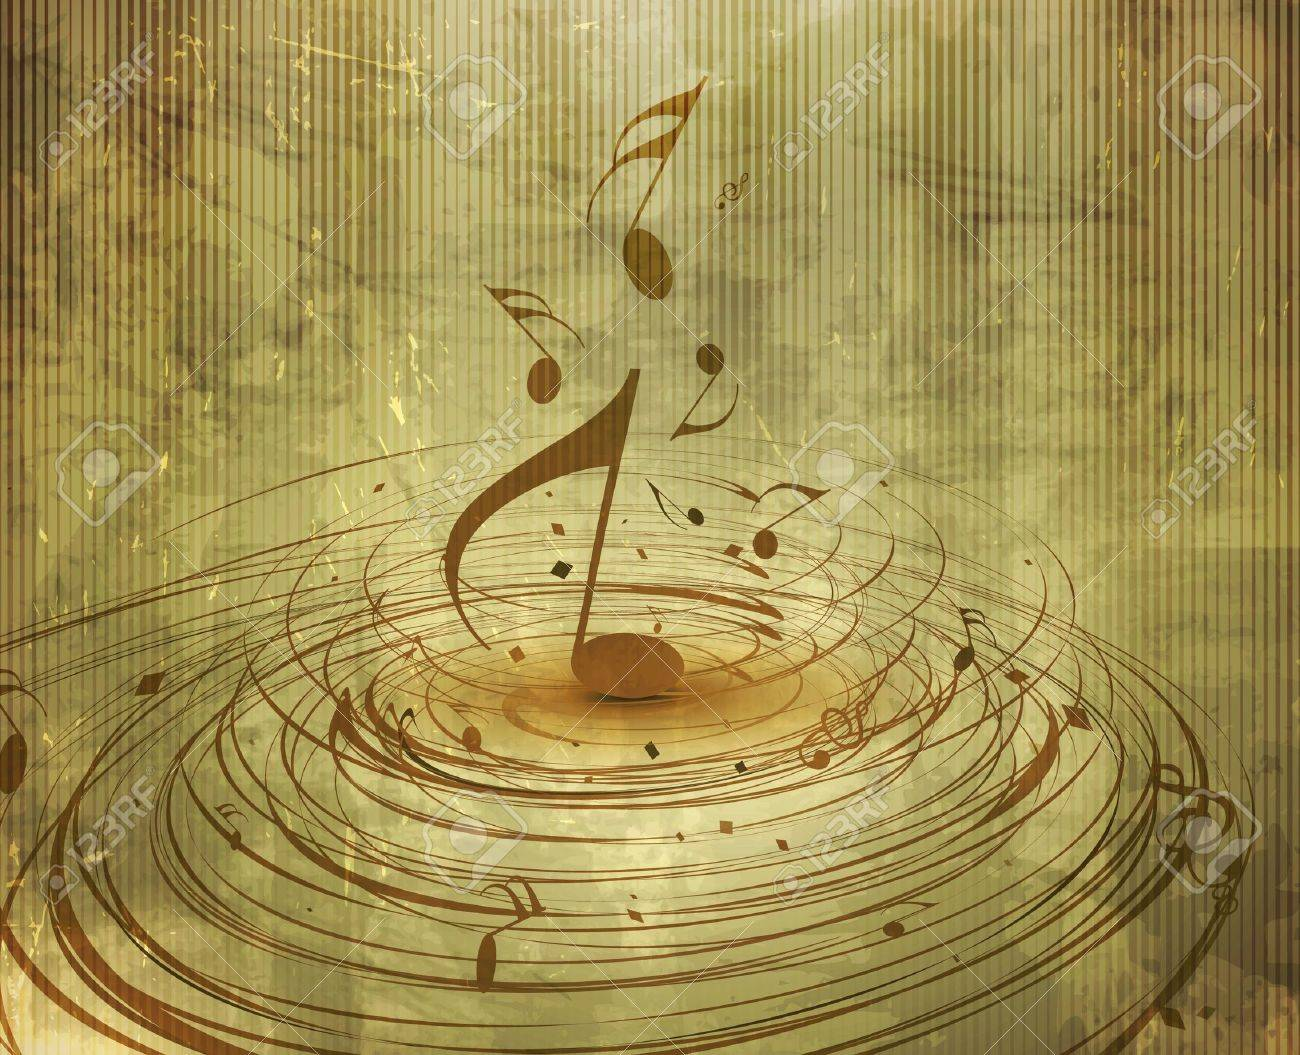 Musical notes staff background on white vector by tassel78 image - Music Background Abstract Texture Background With Music Notes For Design Use Illustration